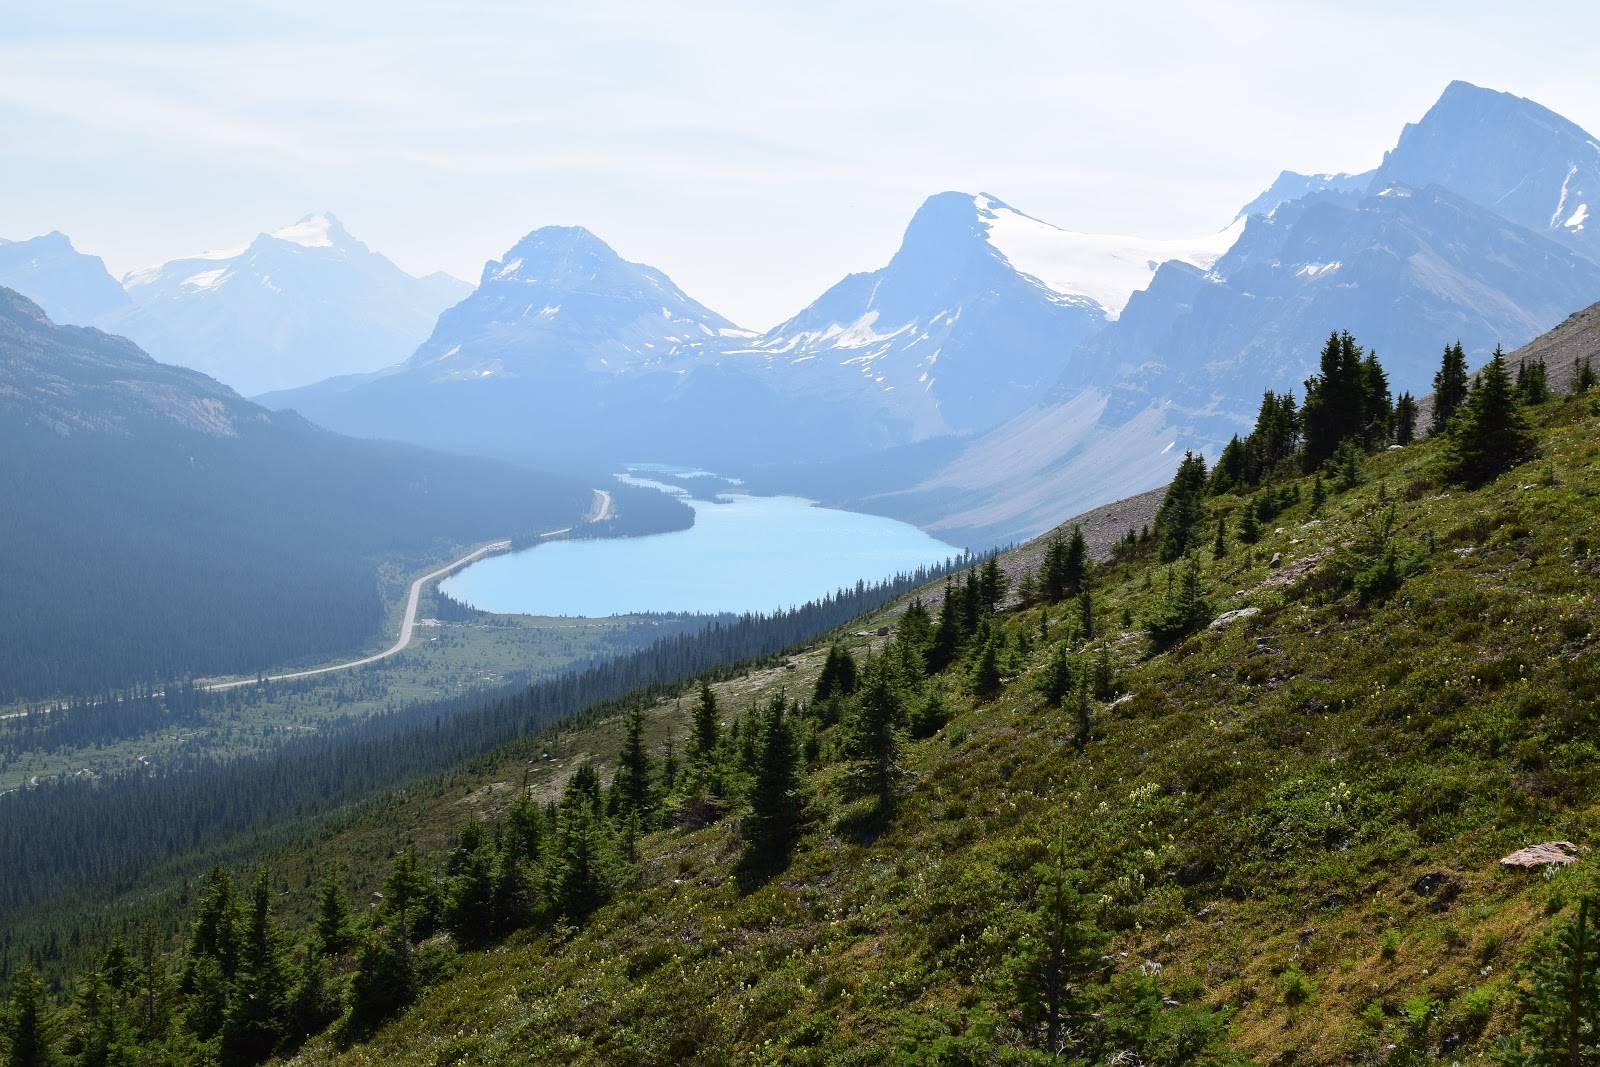 Bow Lake & Bow Glacier from Bow Summit